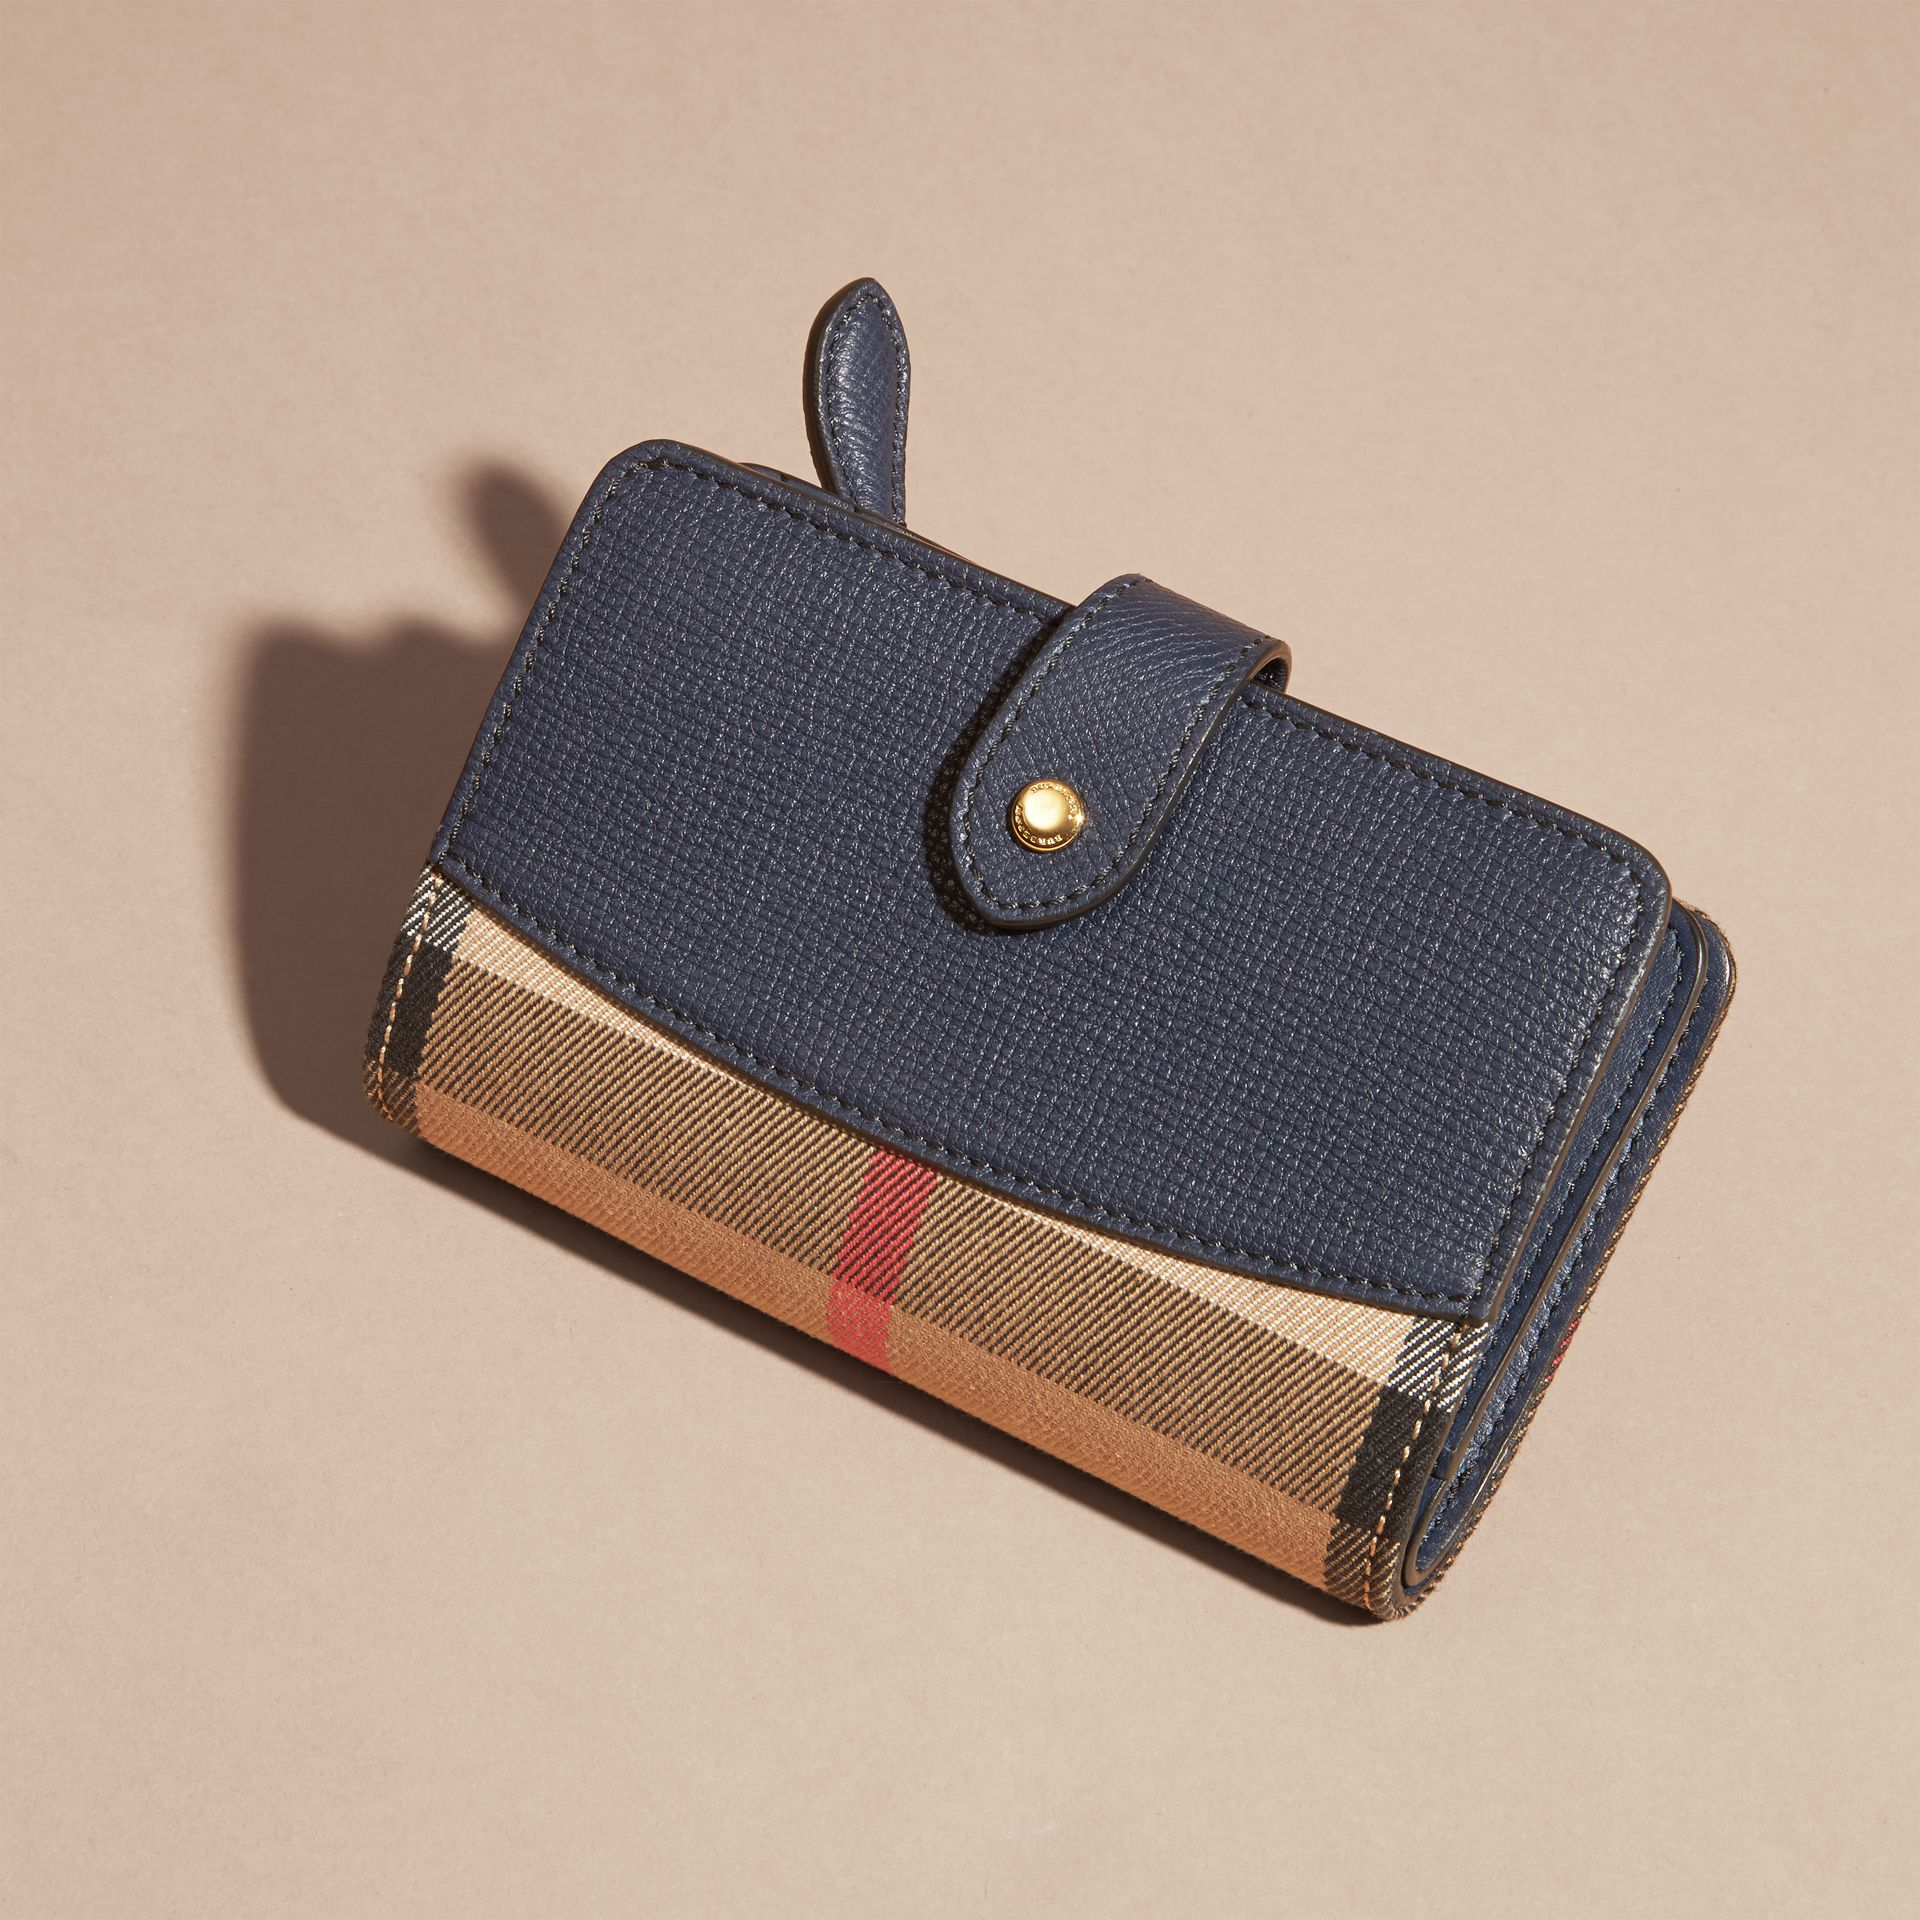 House Check and Leather Wallet in Ink Blue - gallery image 6